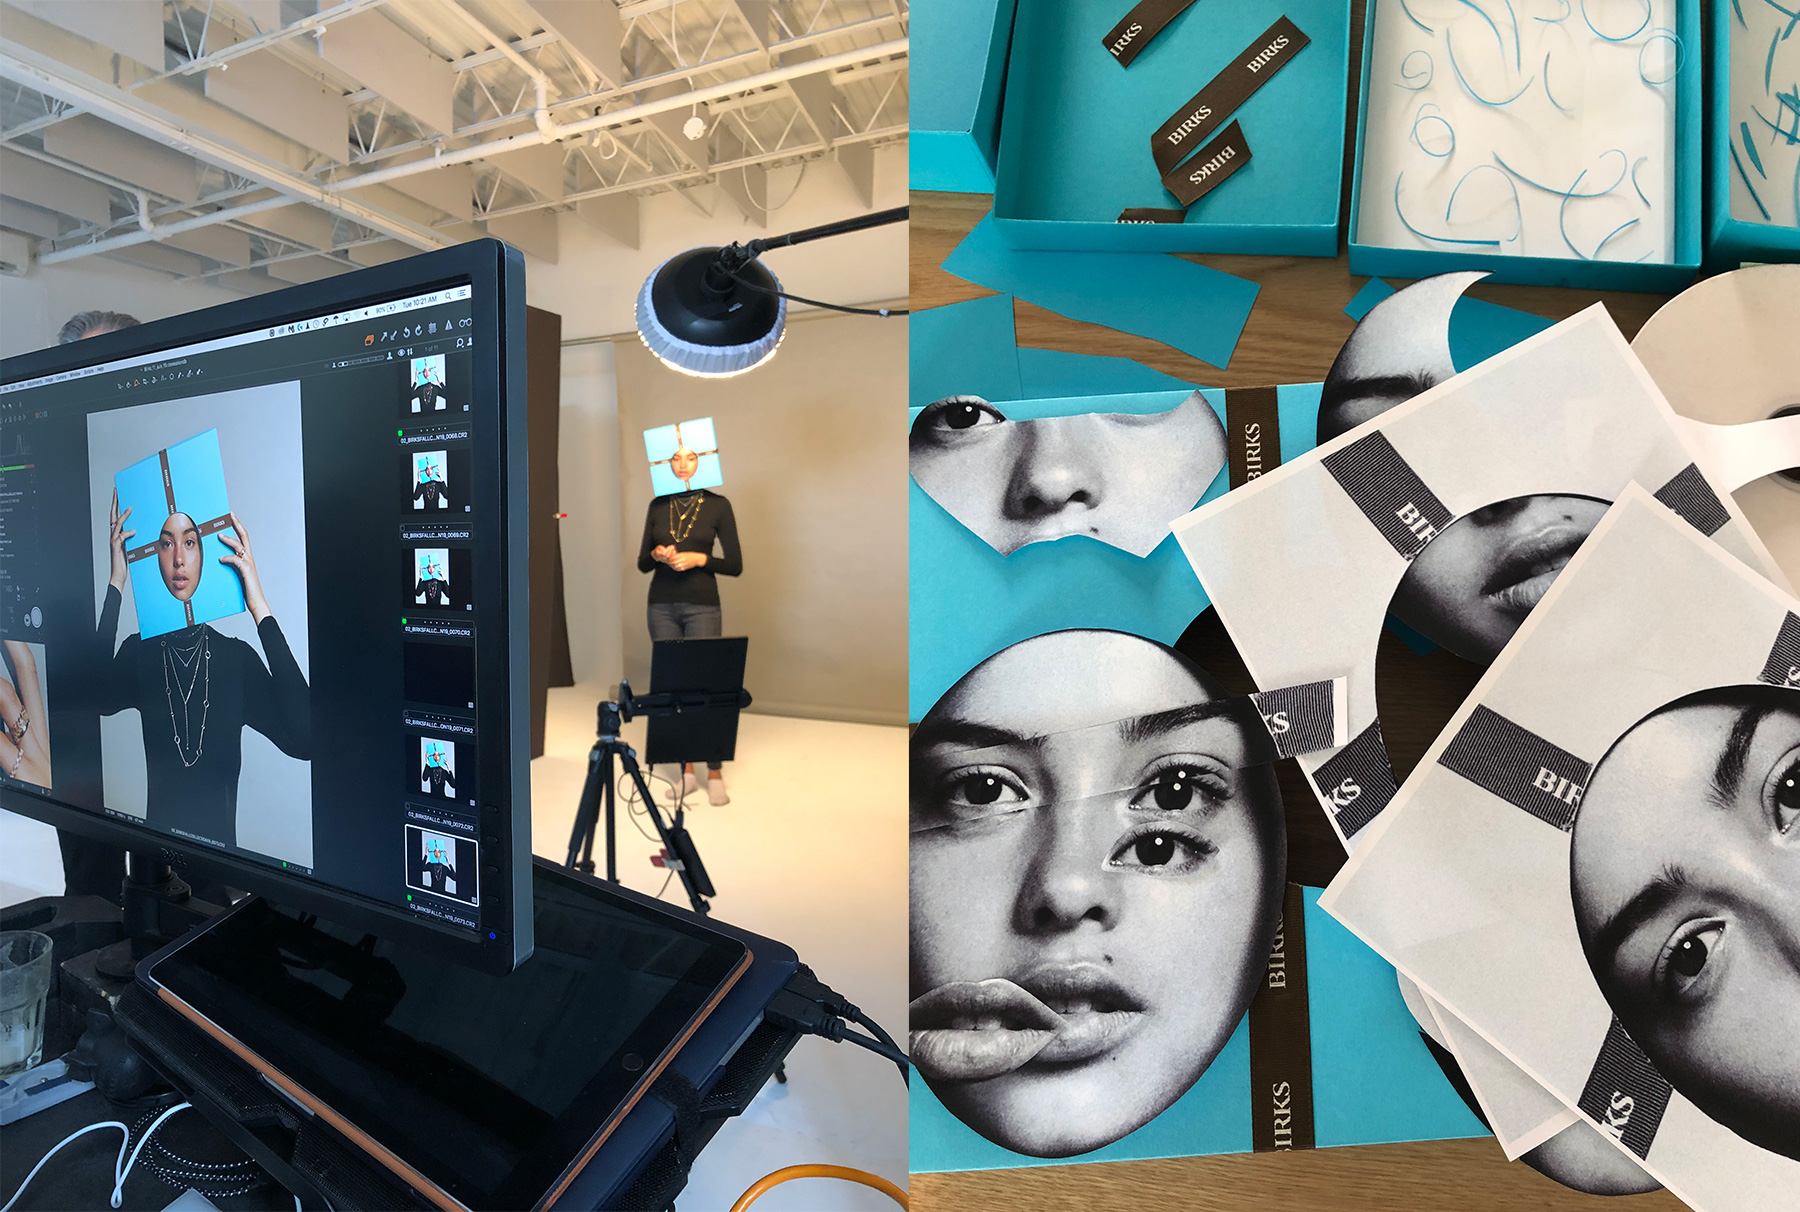 The making of Birks' Fall 2019 campaign by Guillaume Brière: On set with model Jessica (Dulcedo) and photographer duo Leda & St.Jacques (left). Meanwhile, live collage work also happened on set for the still life photography series (right).